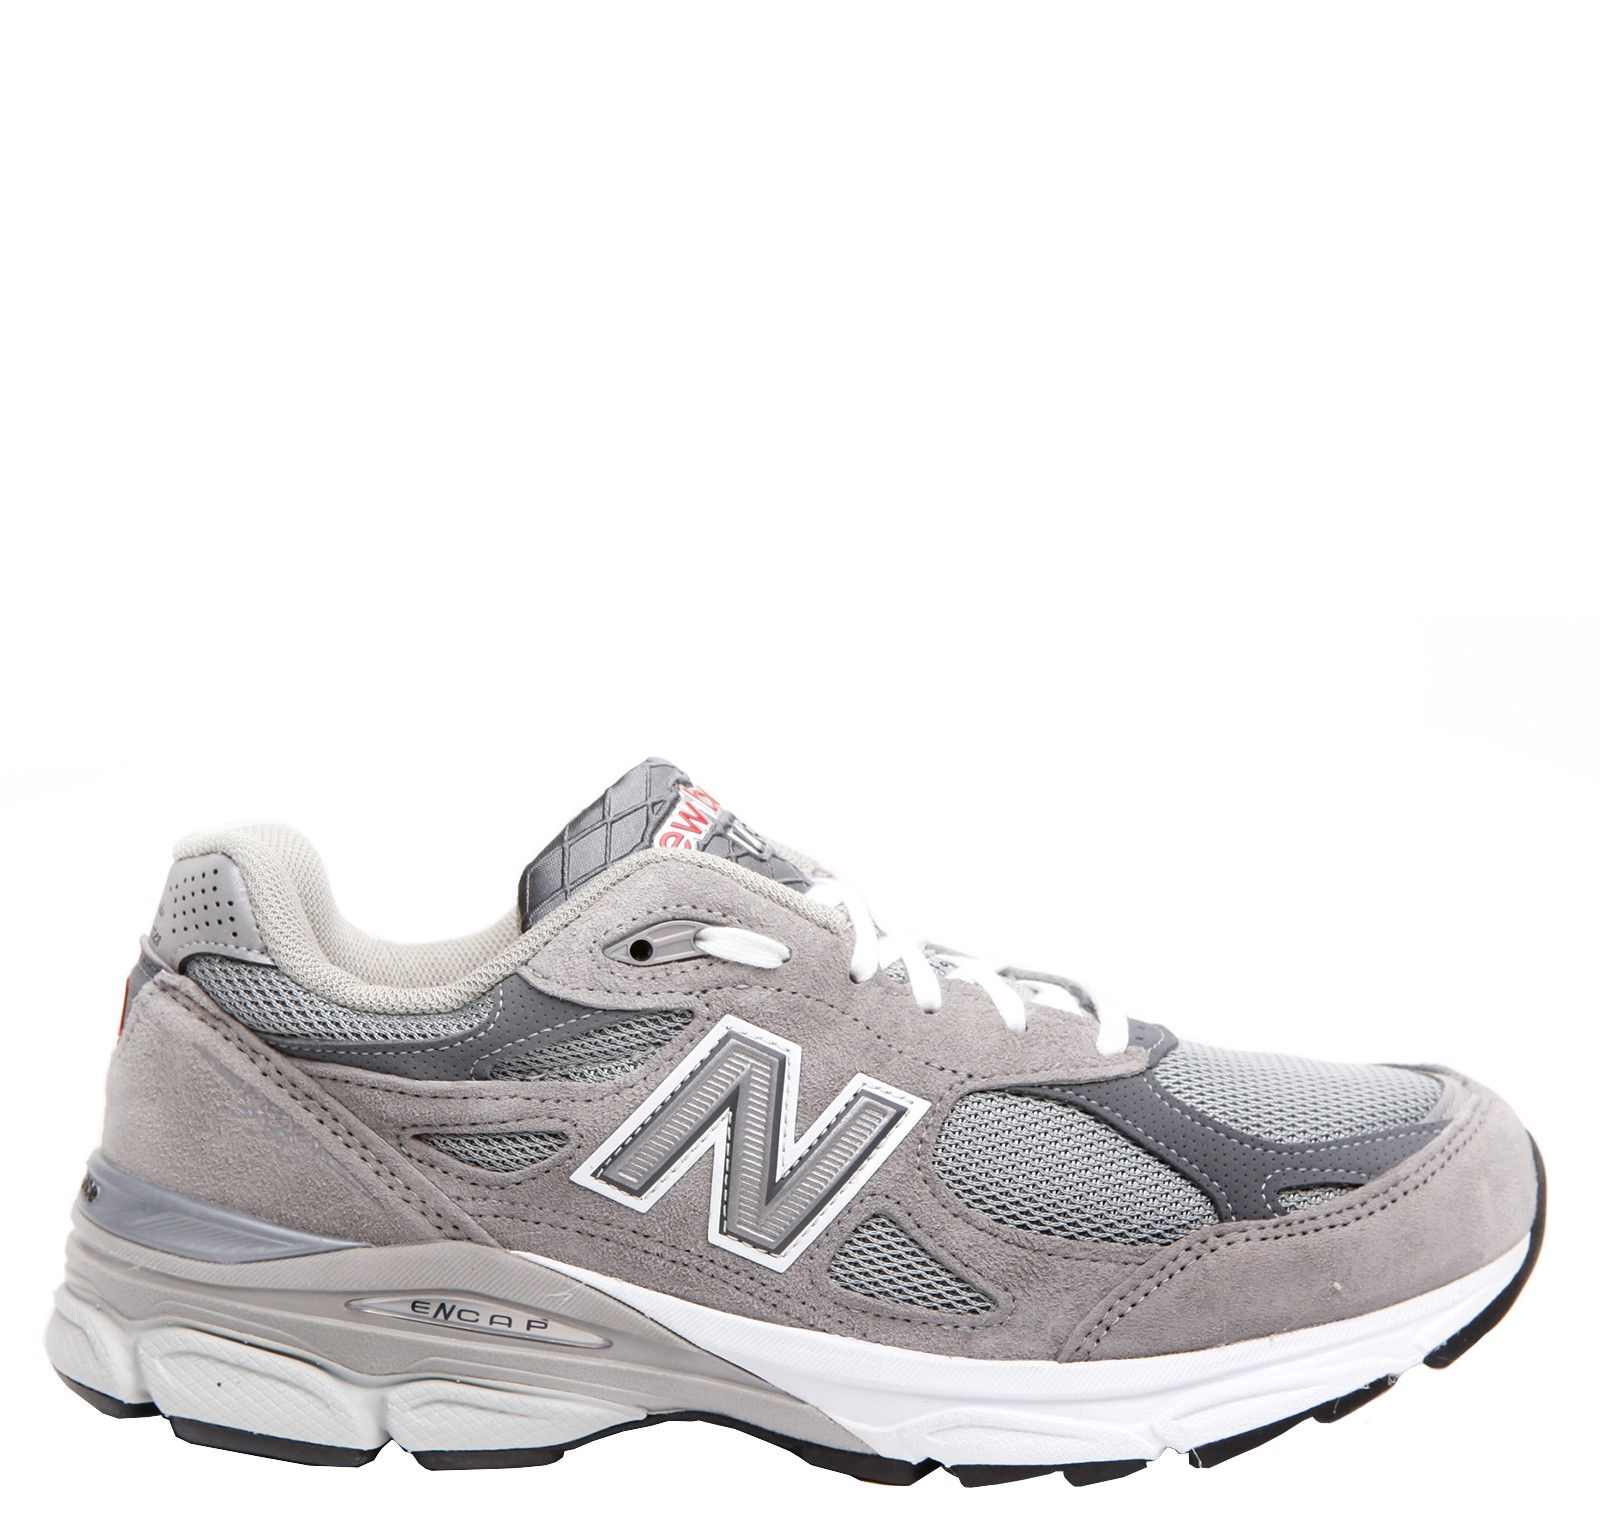 new product 44137 2ca5f New Balance 990-Grey Suede | Shoes | New balance, Sneakers ...